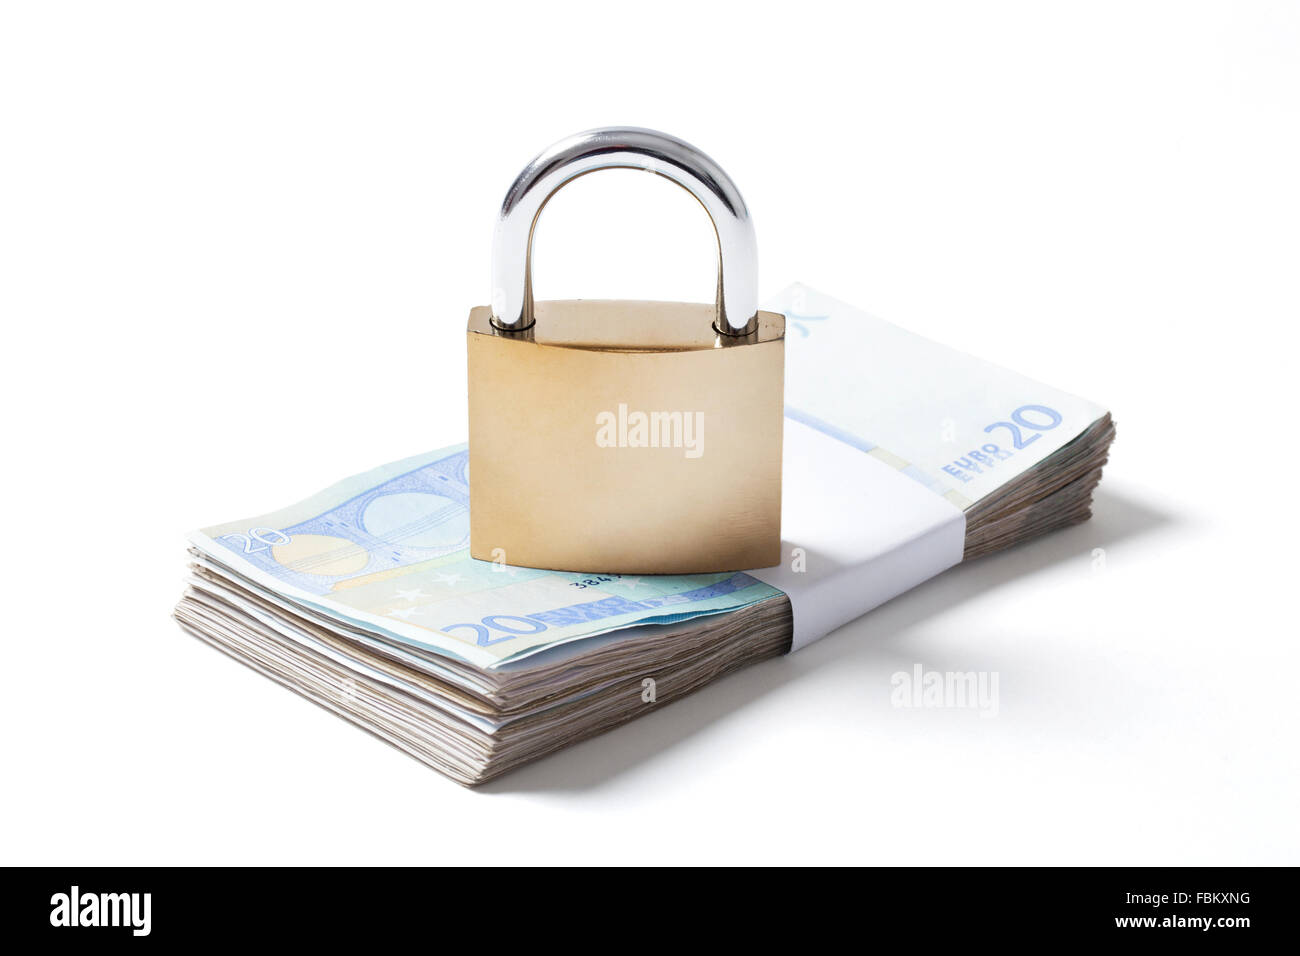 Wad of twenty euros banknotes with locked padlock on it isolated on white background. Image with a clipping path. - Stock Image